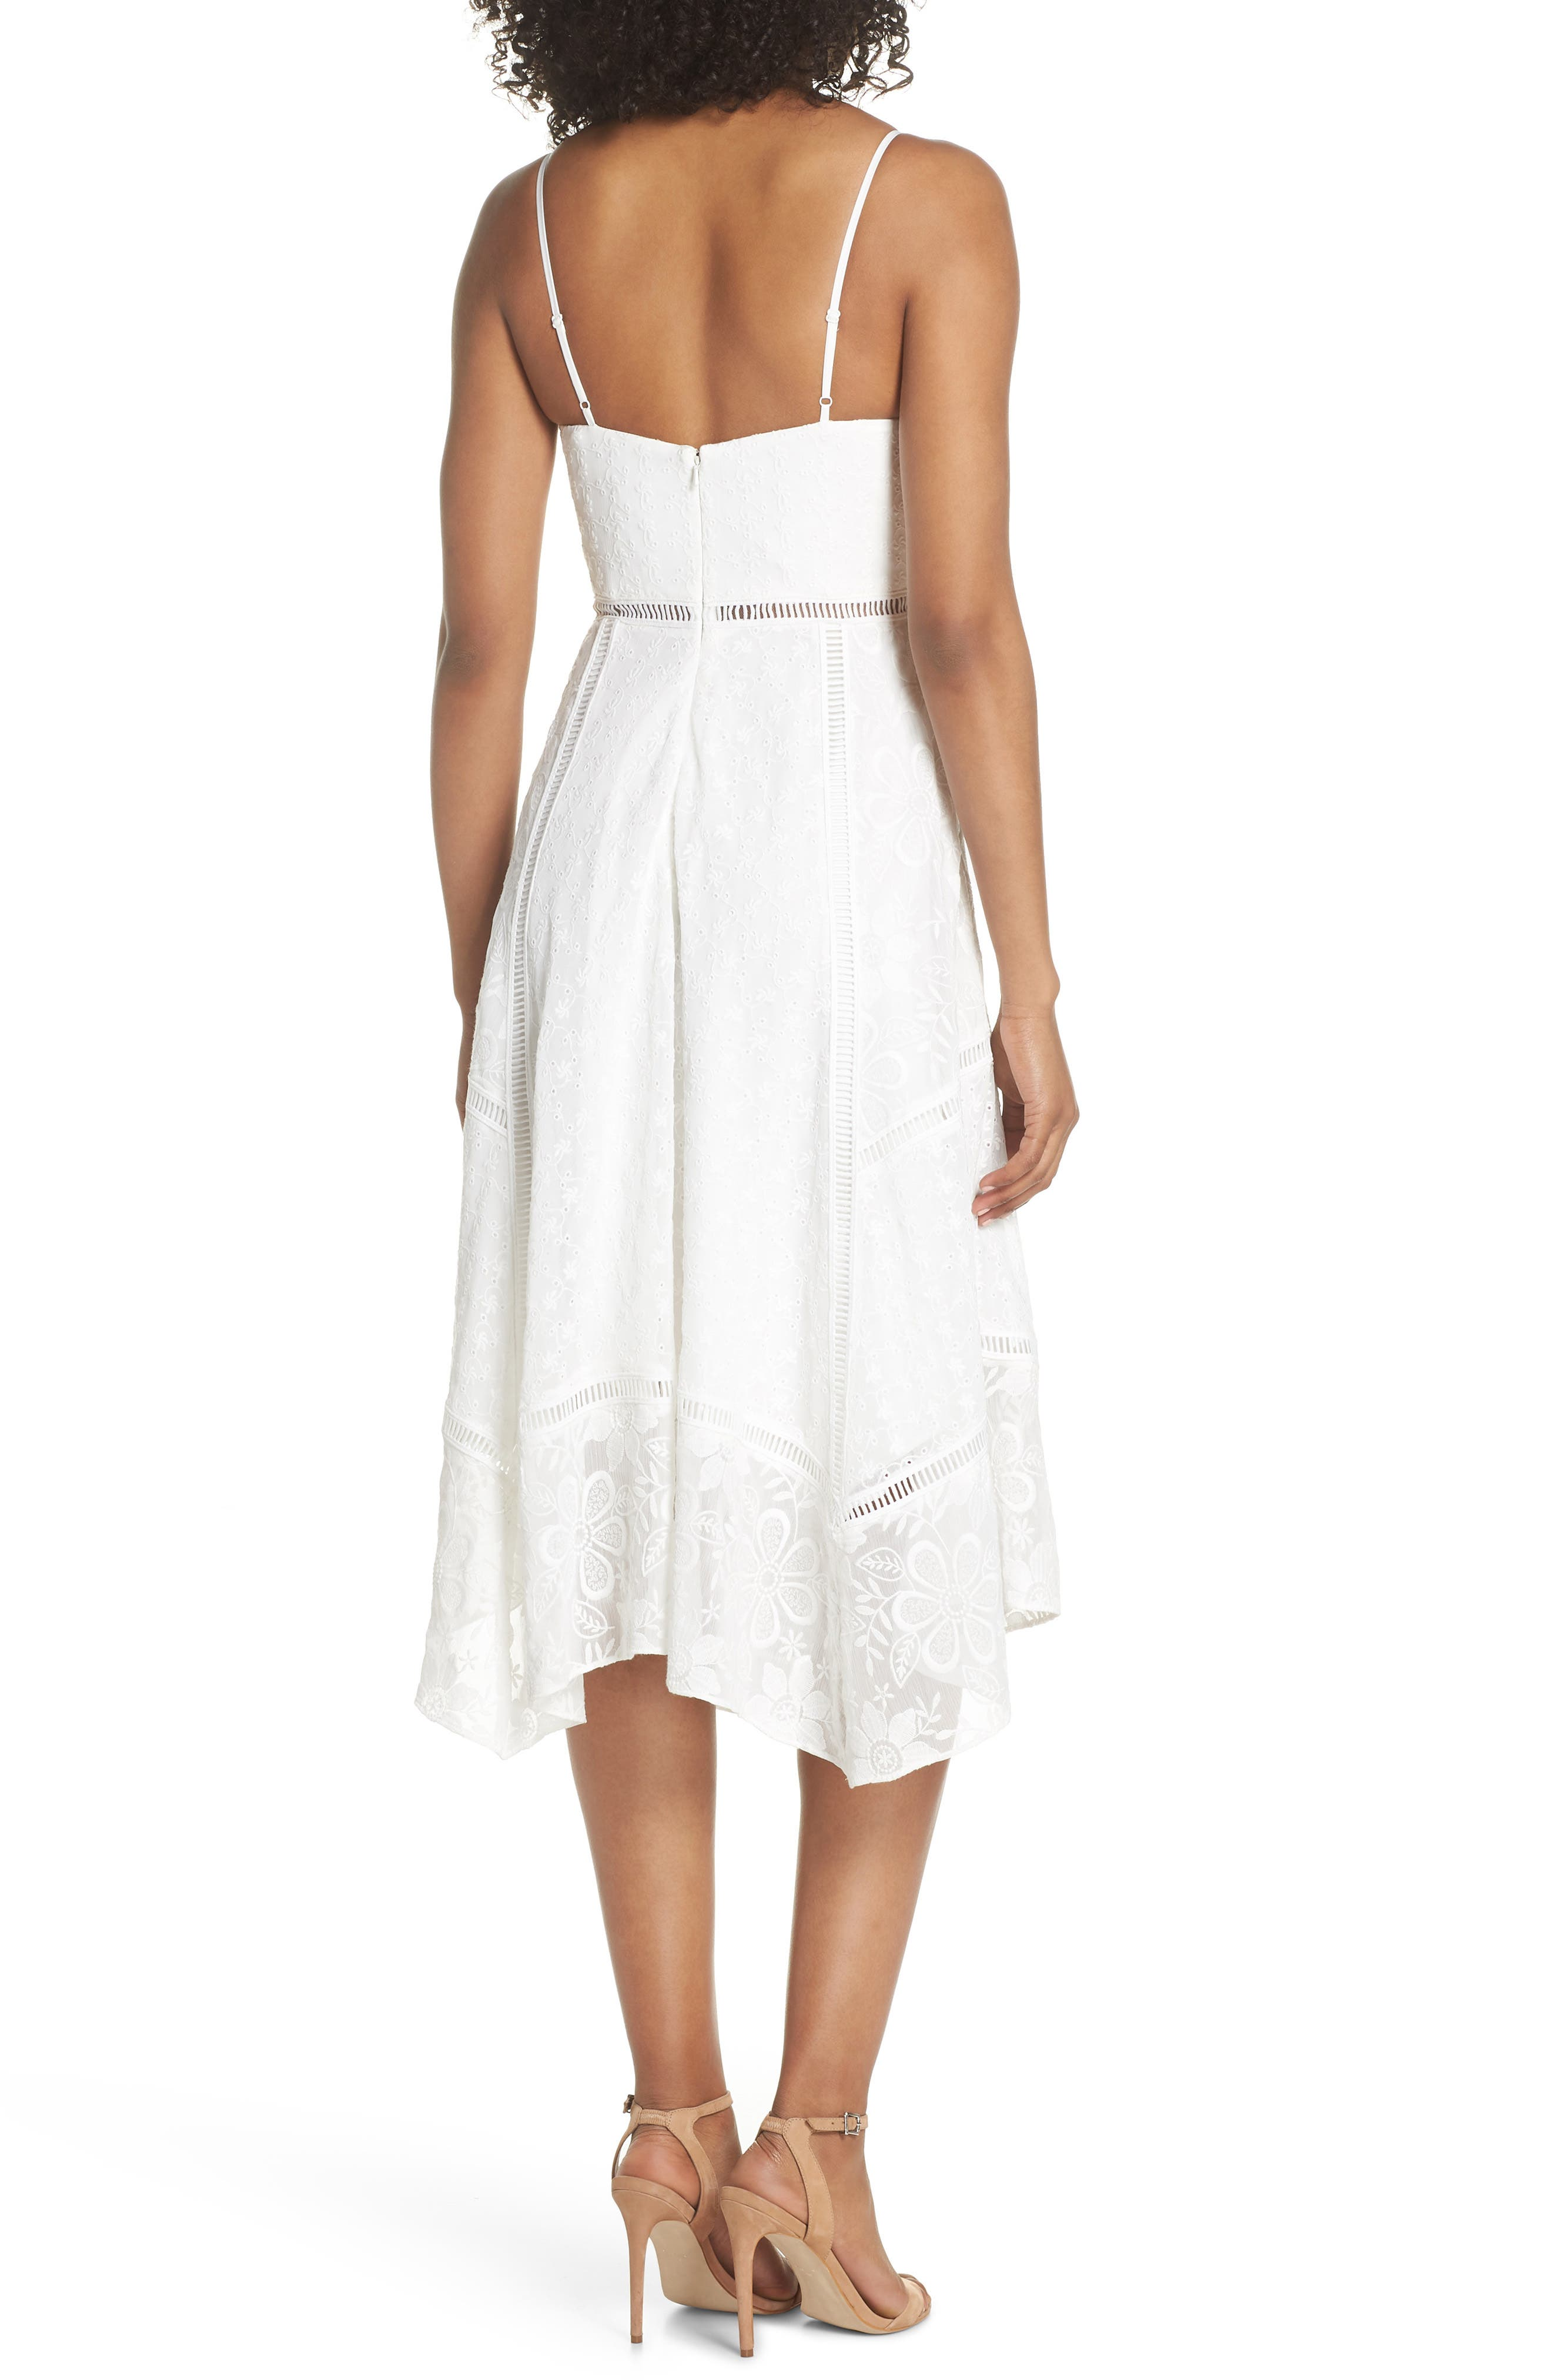 Broderie Anglaise Knot Detail Dress,                             Alternate thumbnail 2, color,                             White